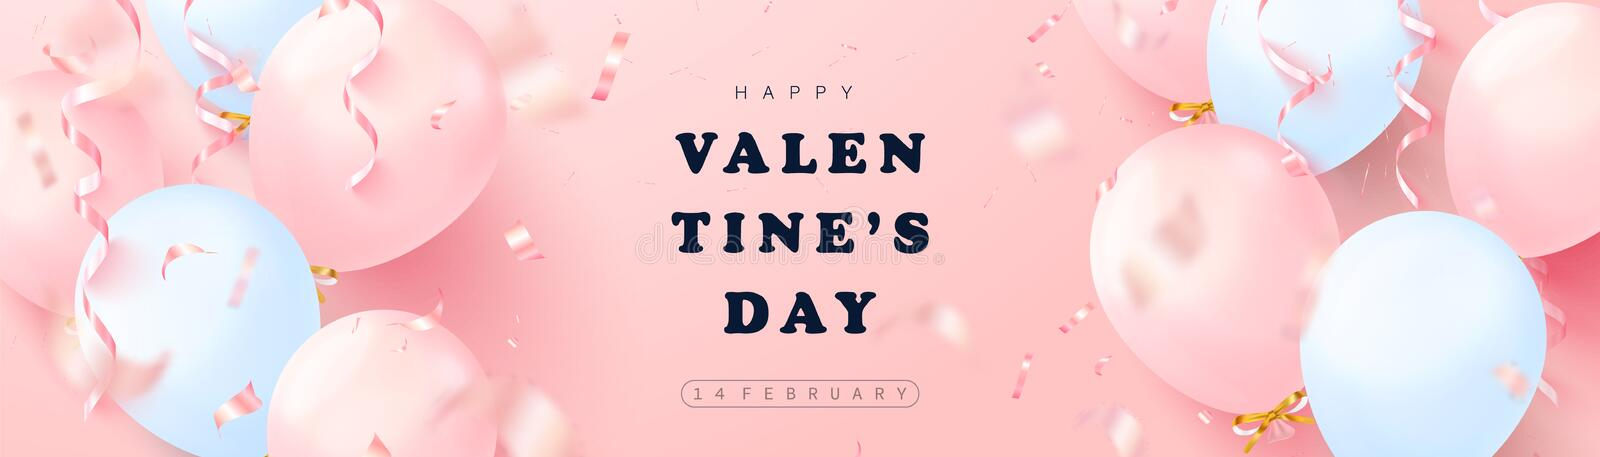 Happy Valentines Day festive banner. Vector illustration with 3D pink and blue balloons, serpentine and confetti.Modern vector illustration